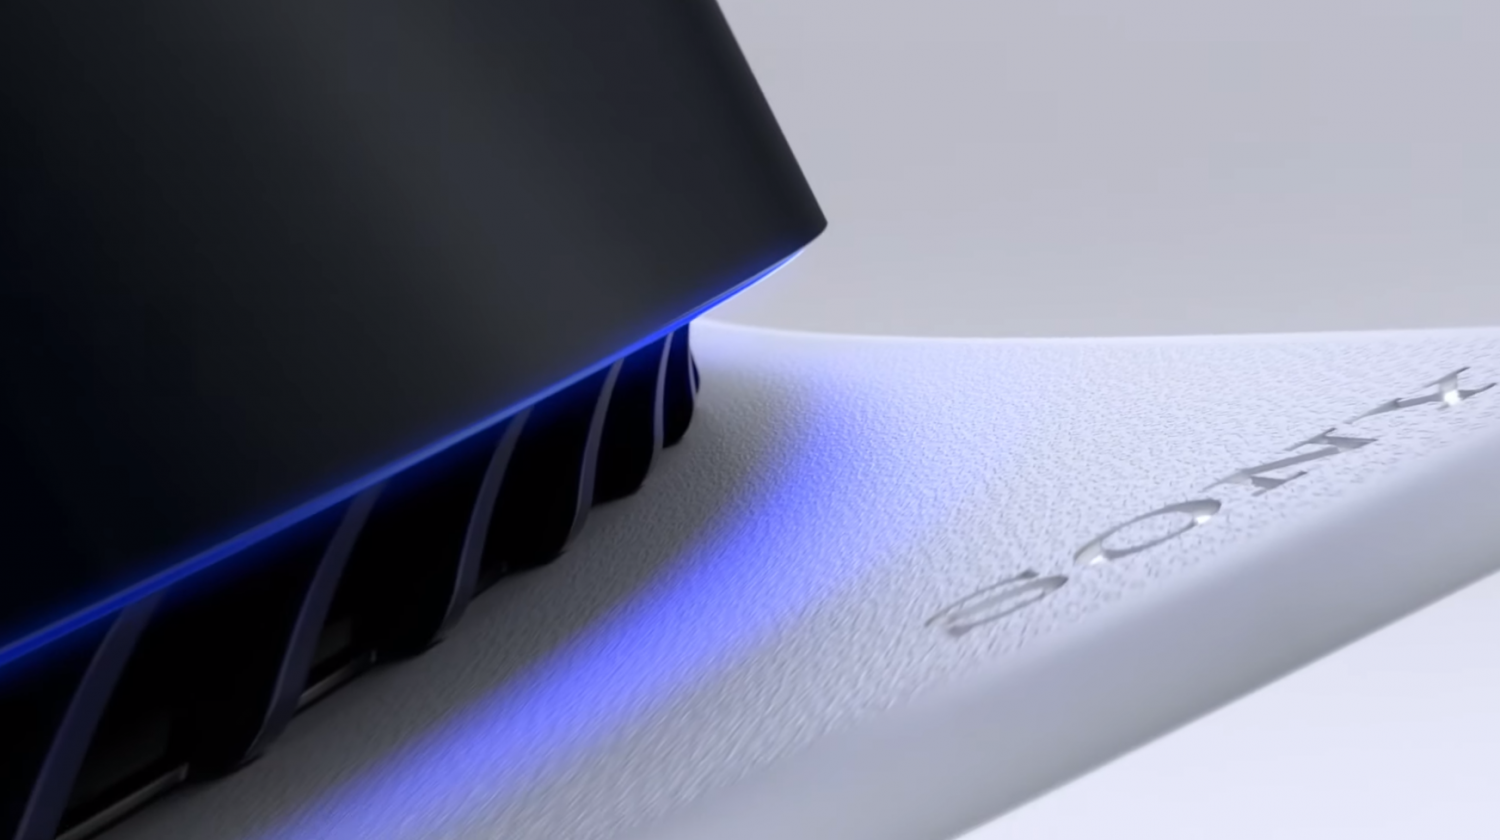 PlayStation 5 will be quiet and cool, Sony says in 2020